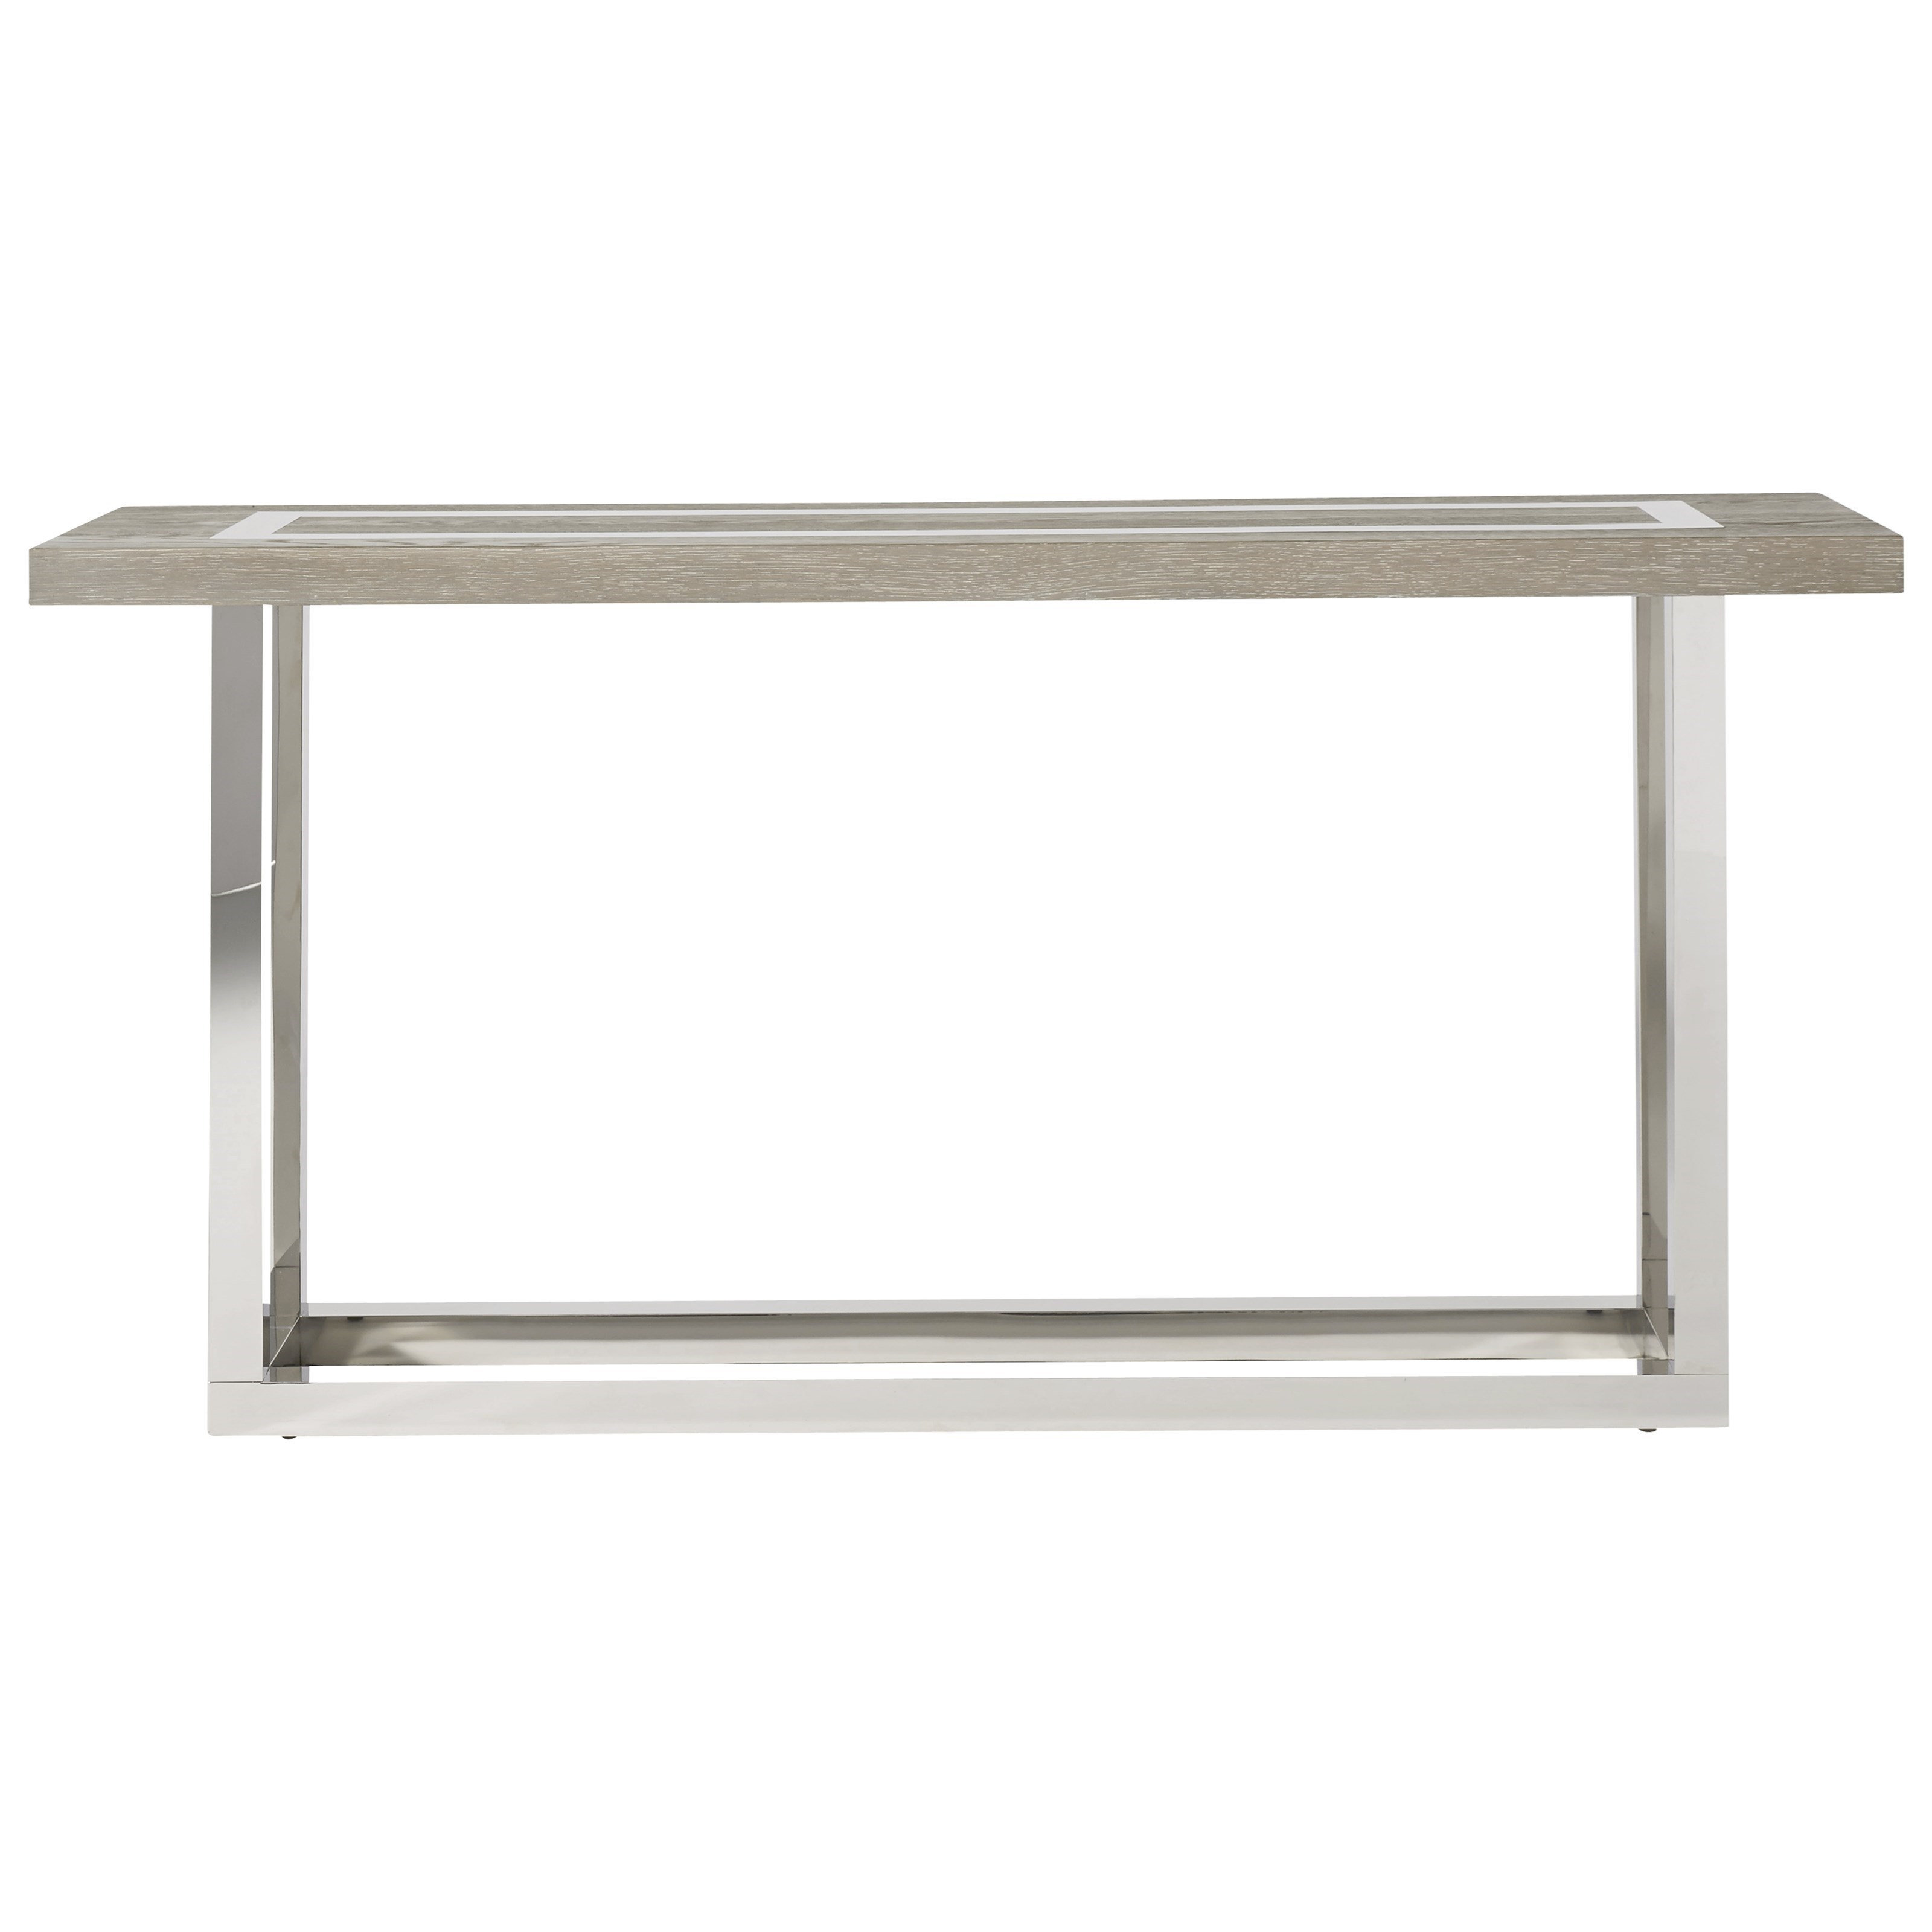 Great Rooms Modern Wyatt Console Table - Item Number: 645816